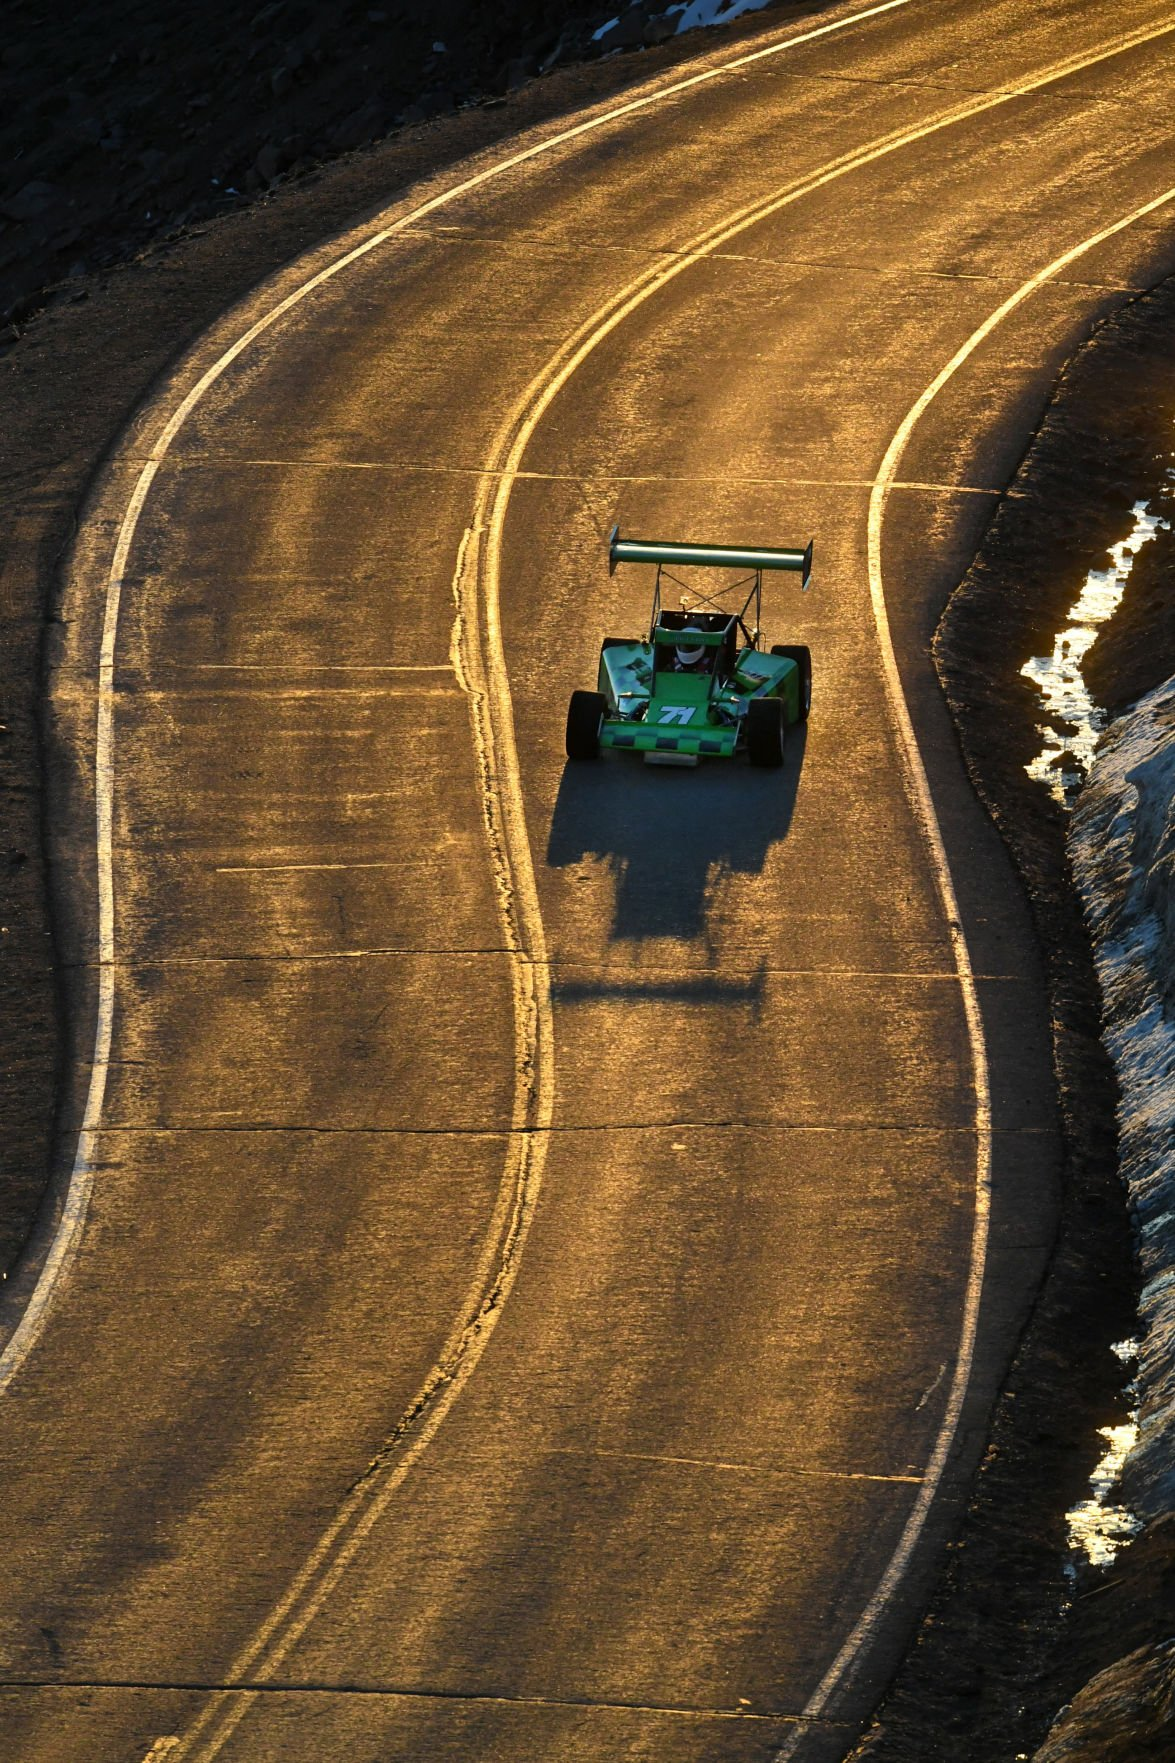 Pikes Peak Hill Climb brings joys, losses